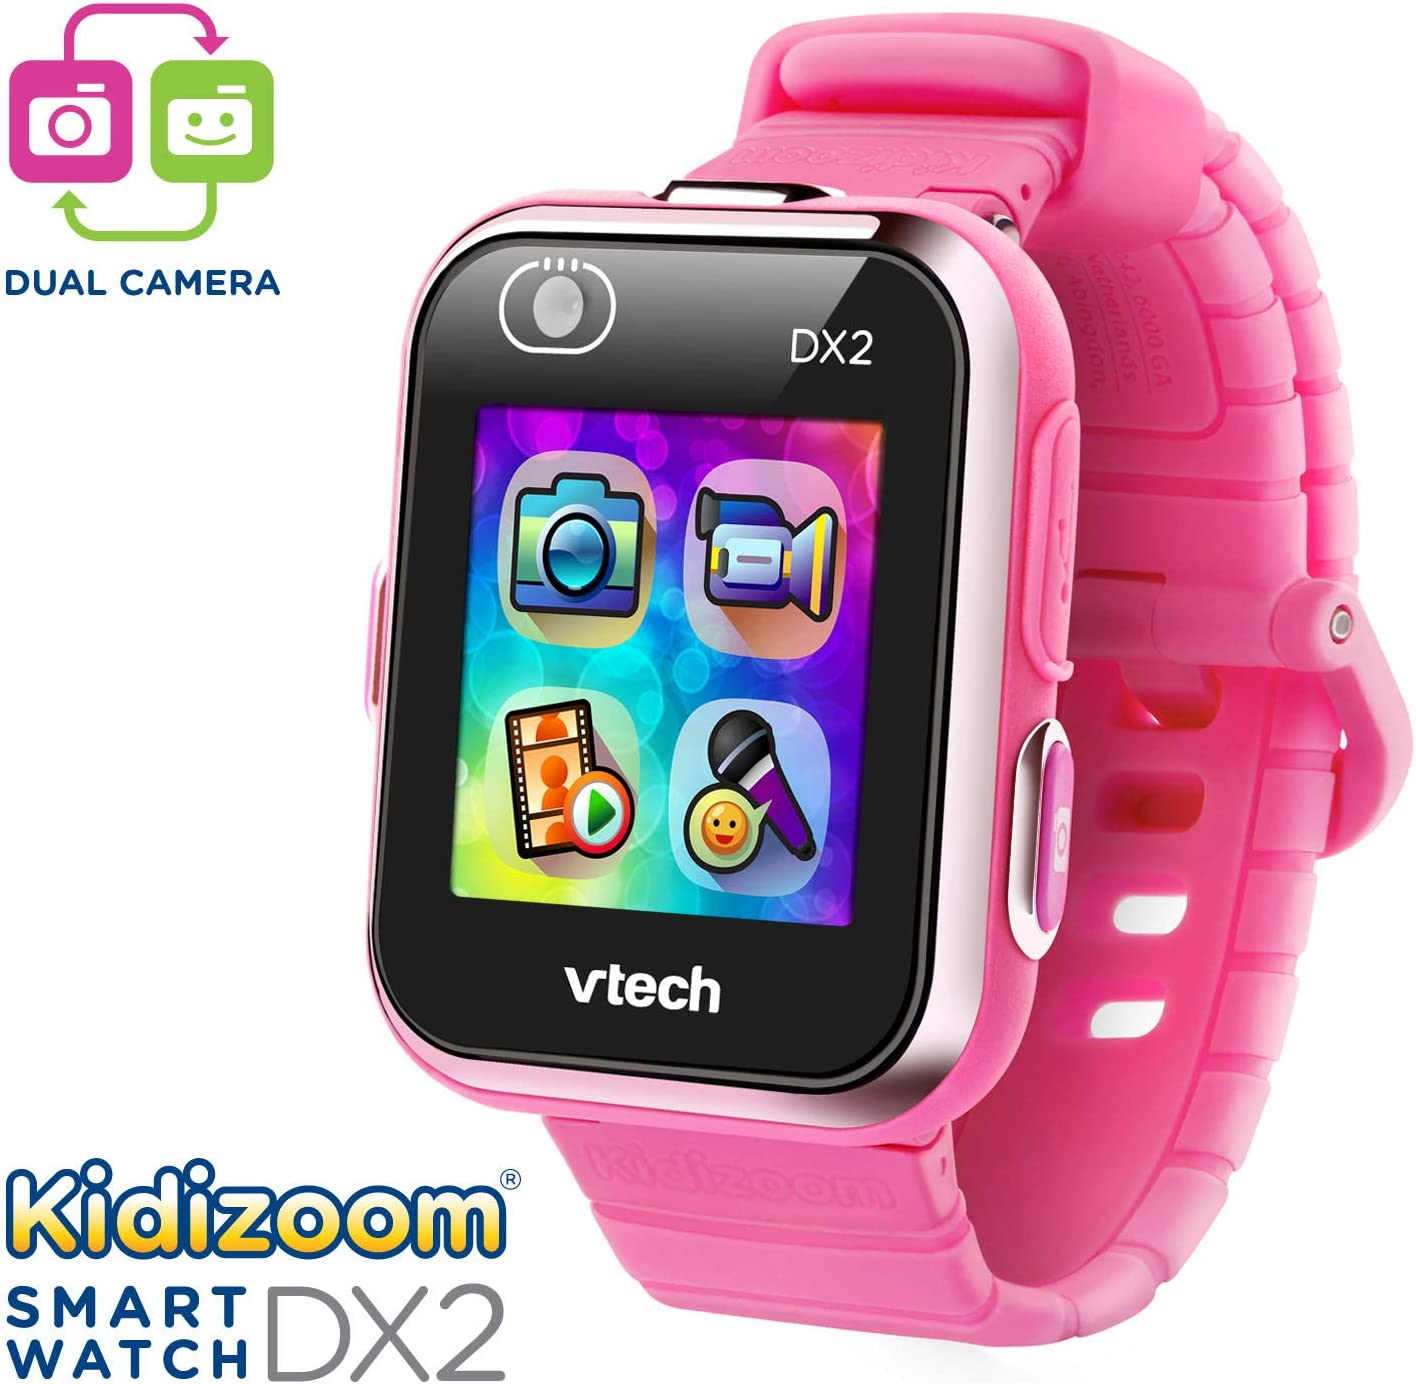 Top 15 Best Watches For Kids (2020 Reviews & Buying Guide) 11